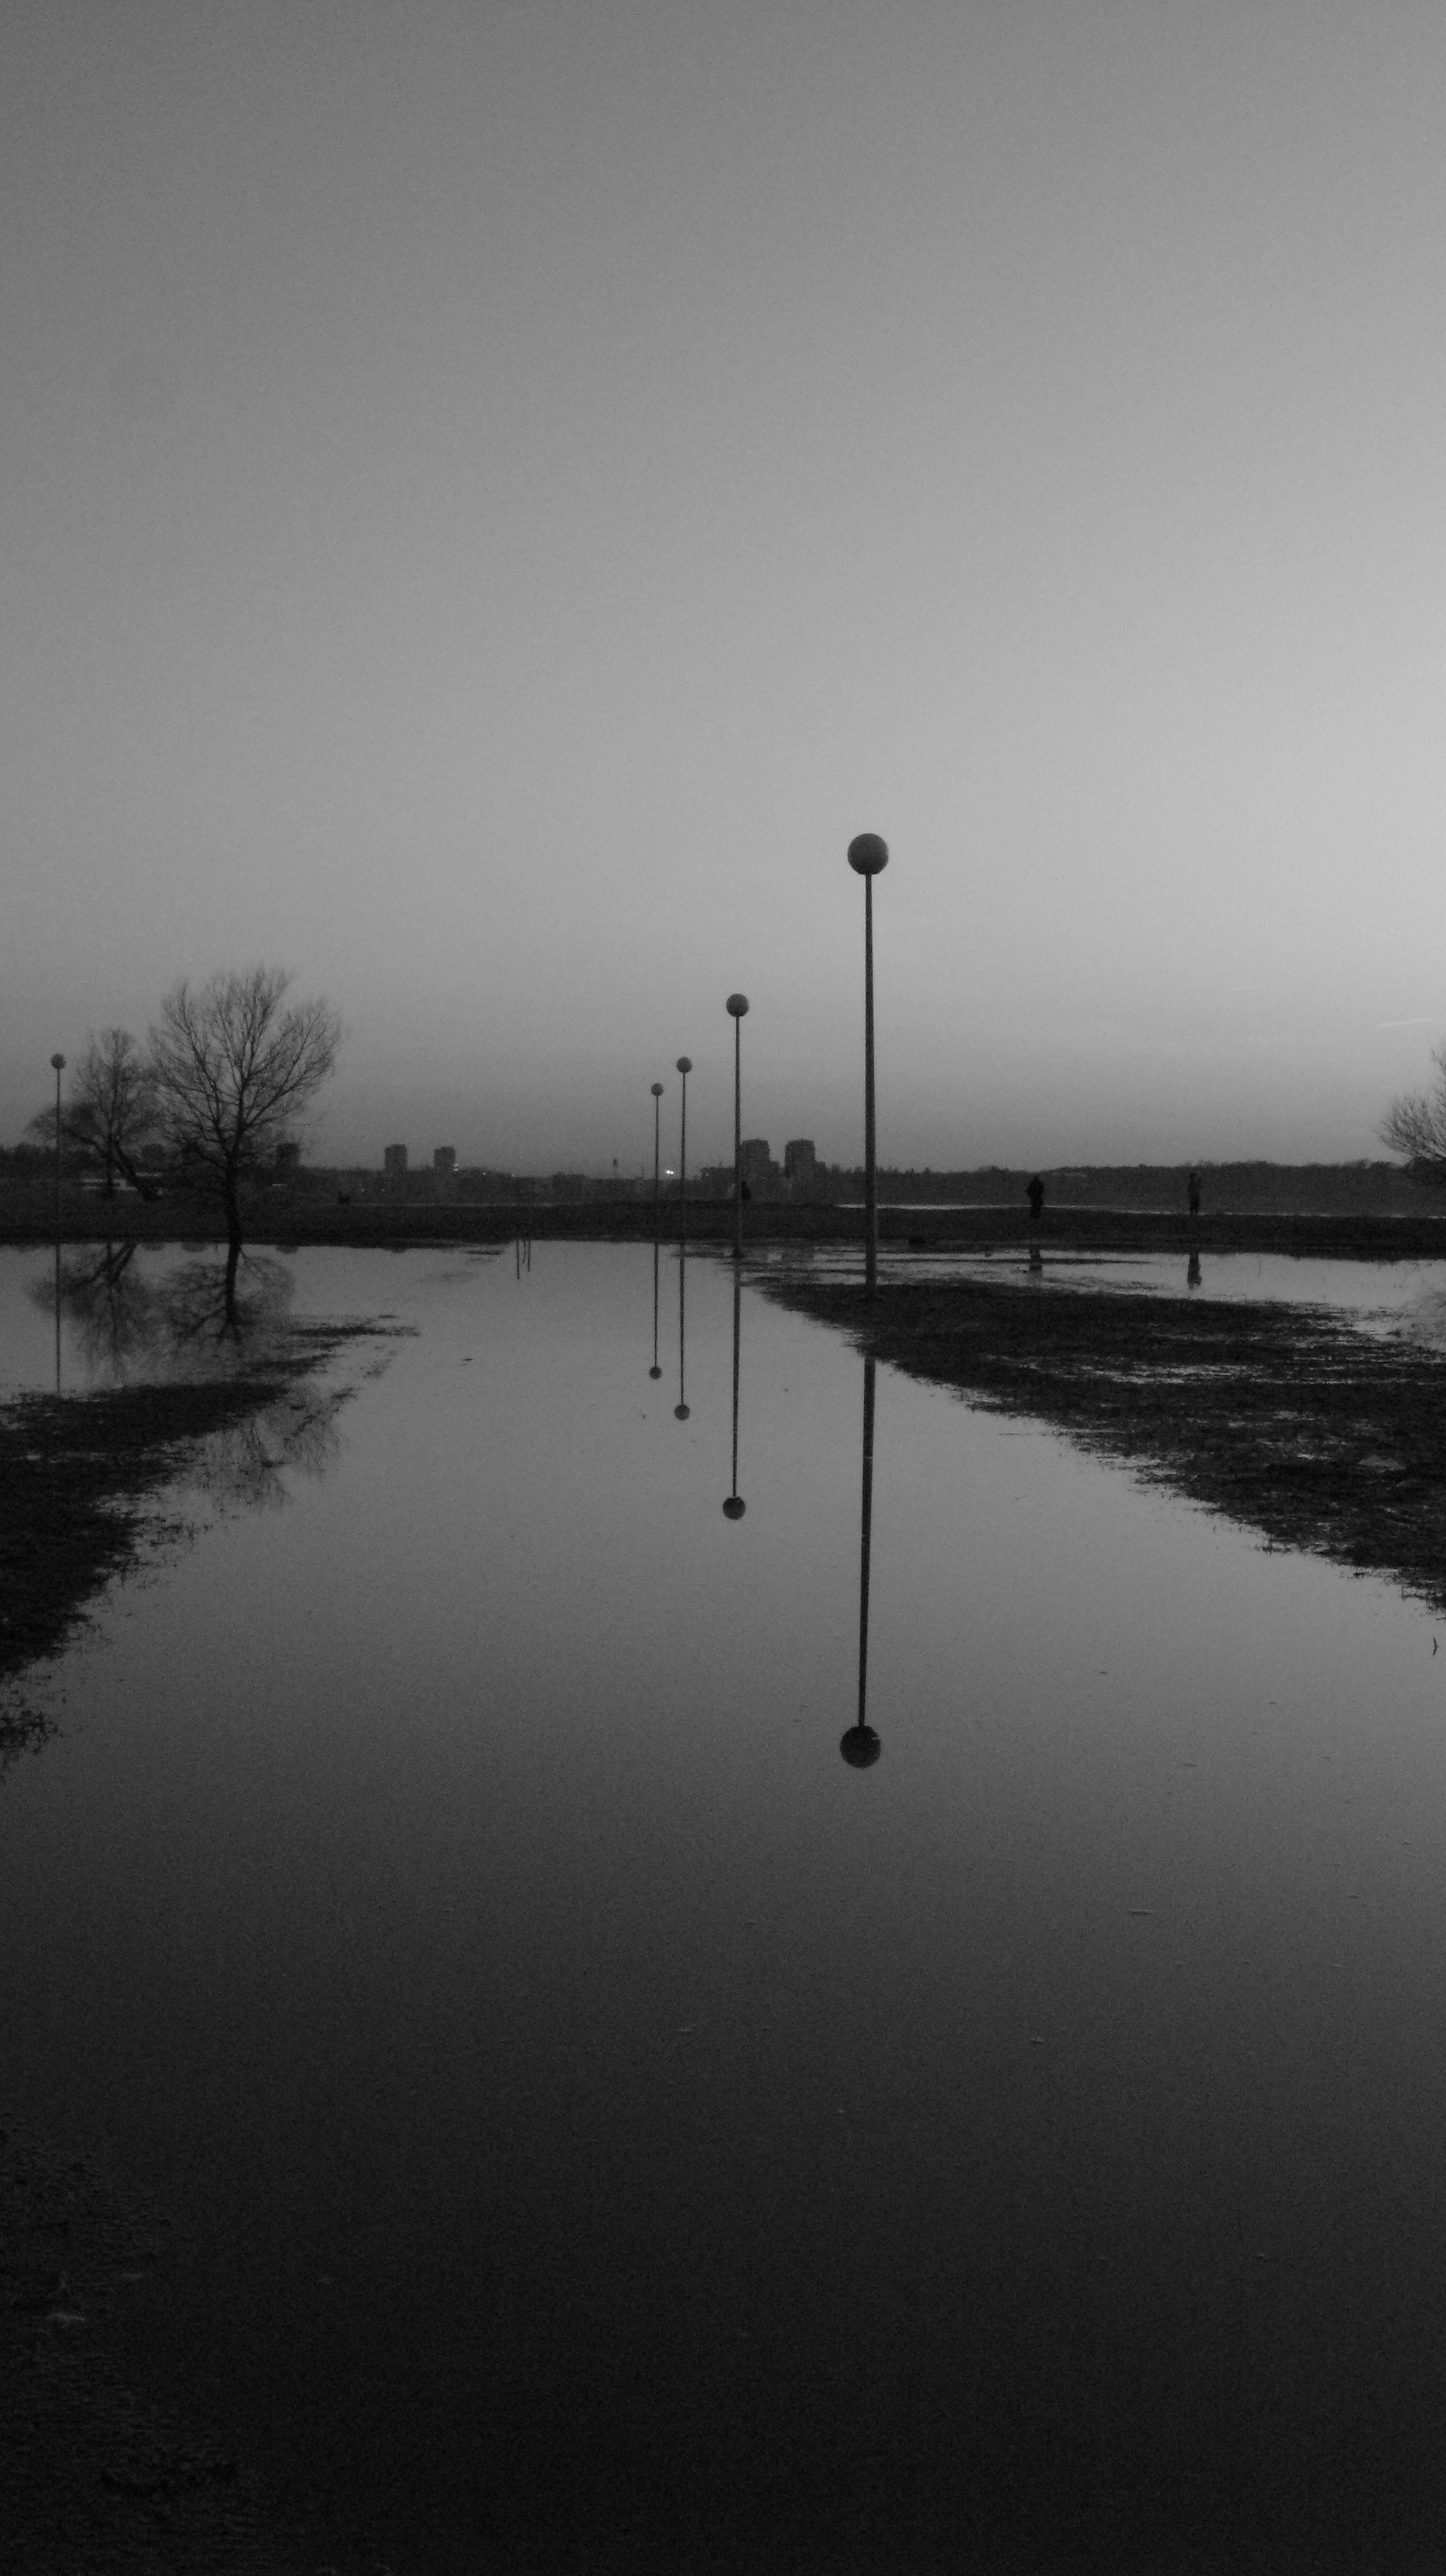 Black and white flooded sidewalk with street lamp along the way